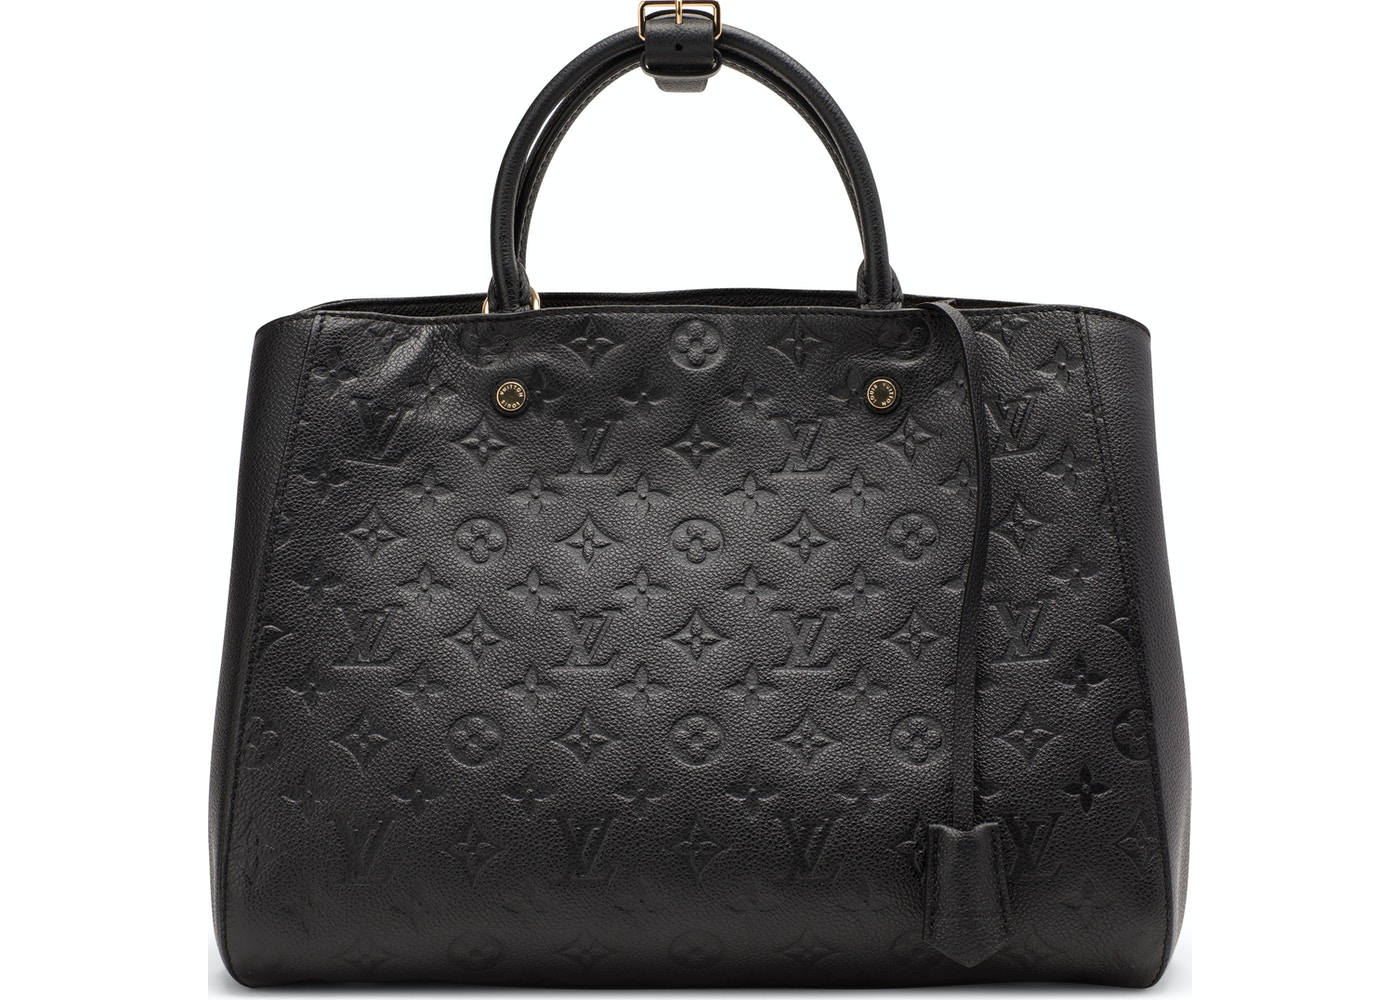 0a5c7fba8630 Louis Vuitton Montaigne Monogram Empreinte GM Noir. Monogram Empreinte GM  Noir